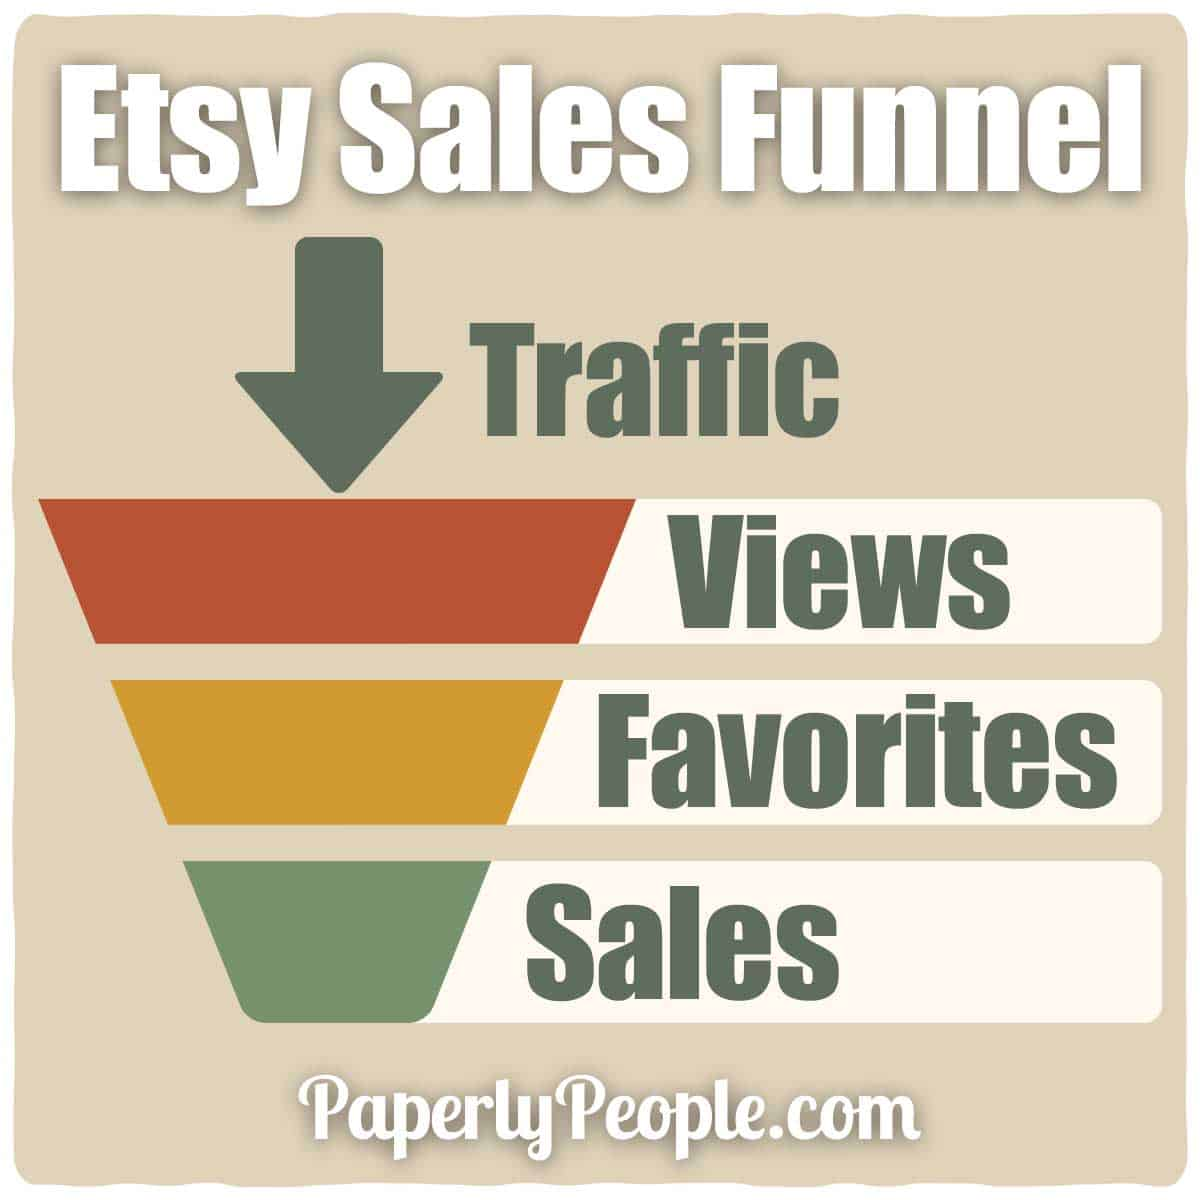 Etsy Sales Funnel